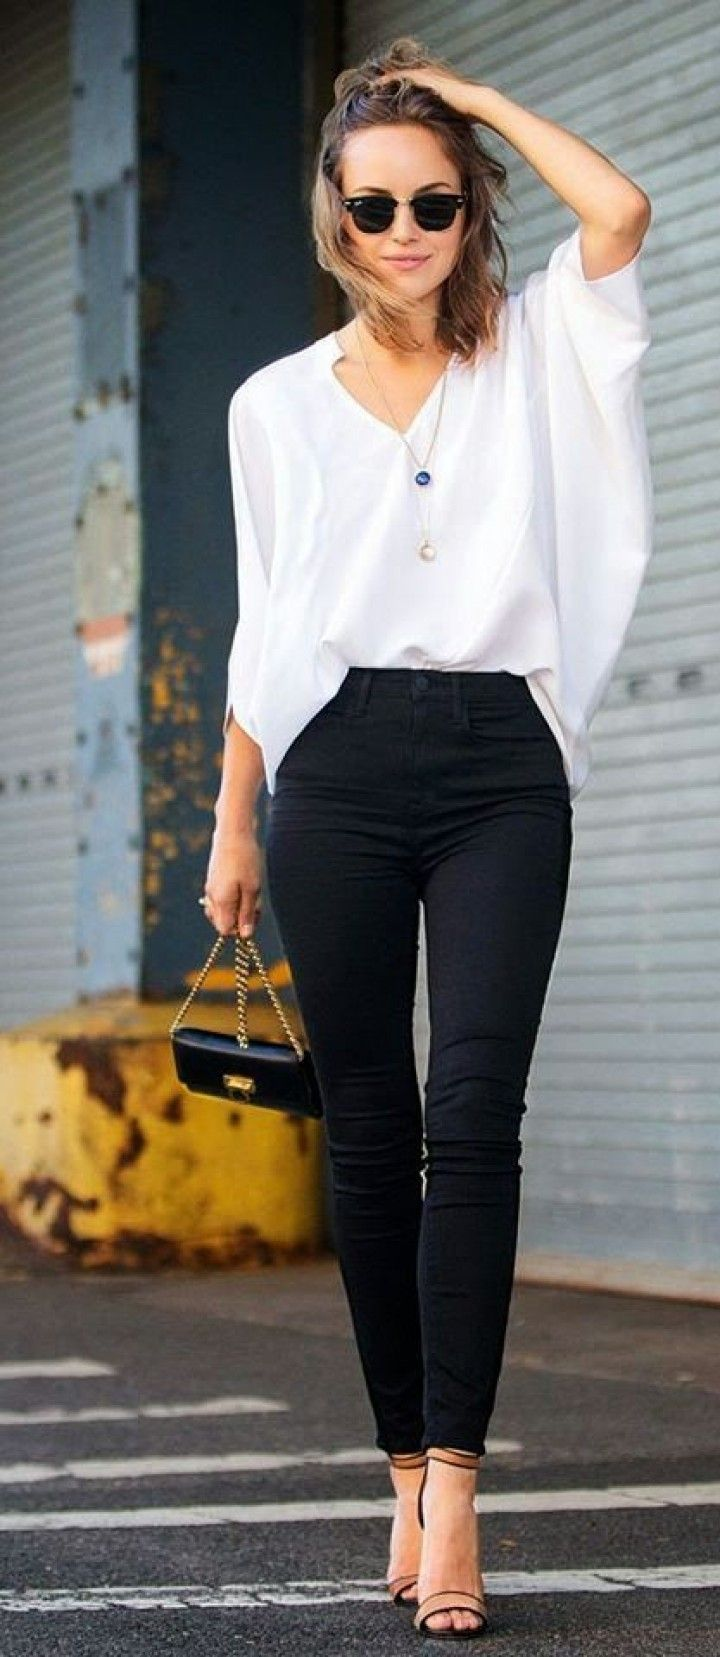 black higwaisted skinnies + white shirt + heels fab office attire